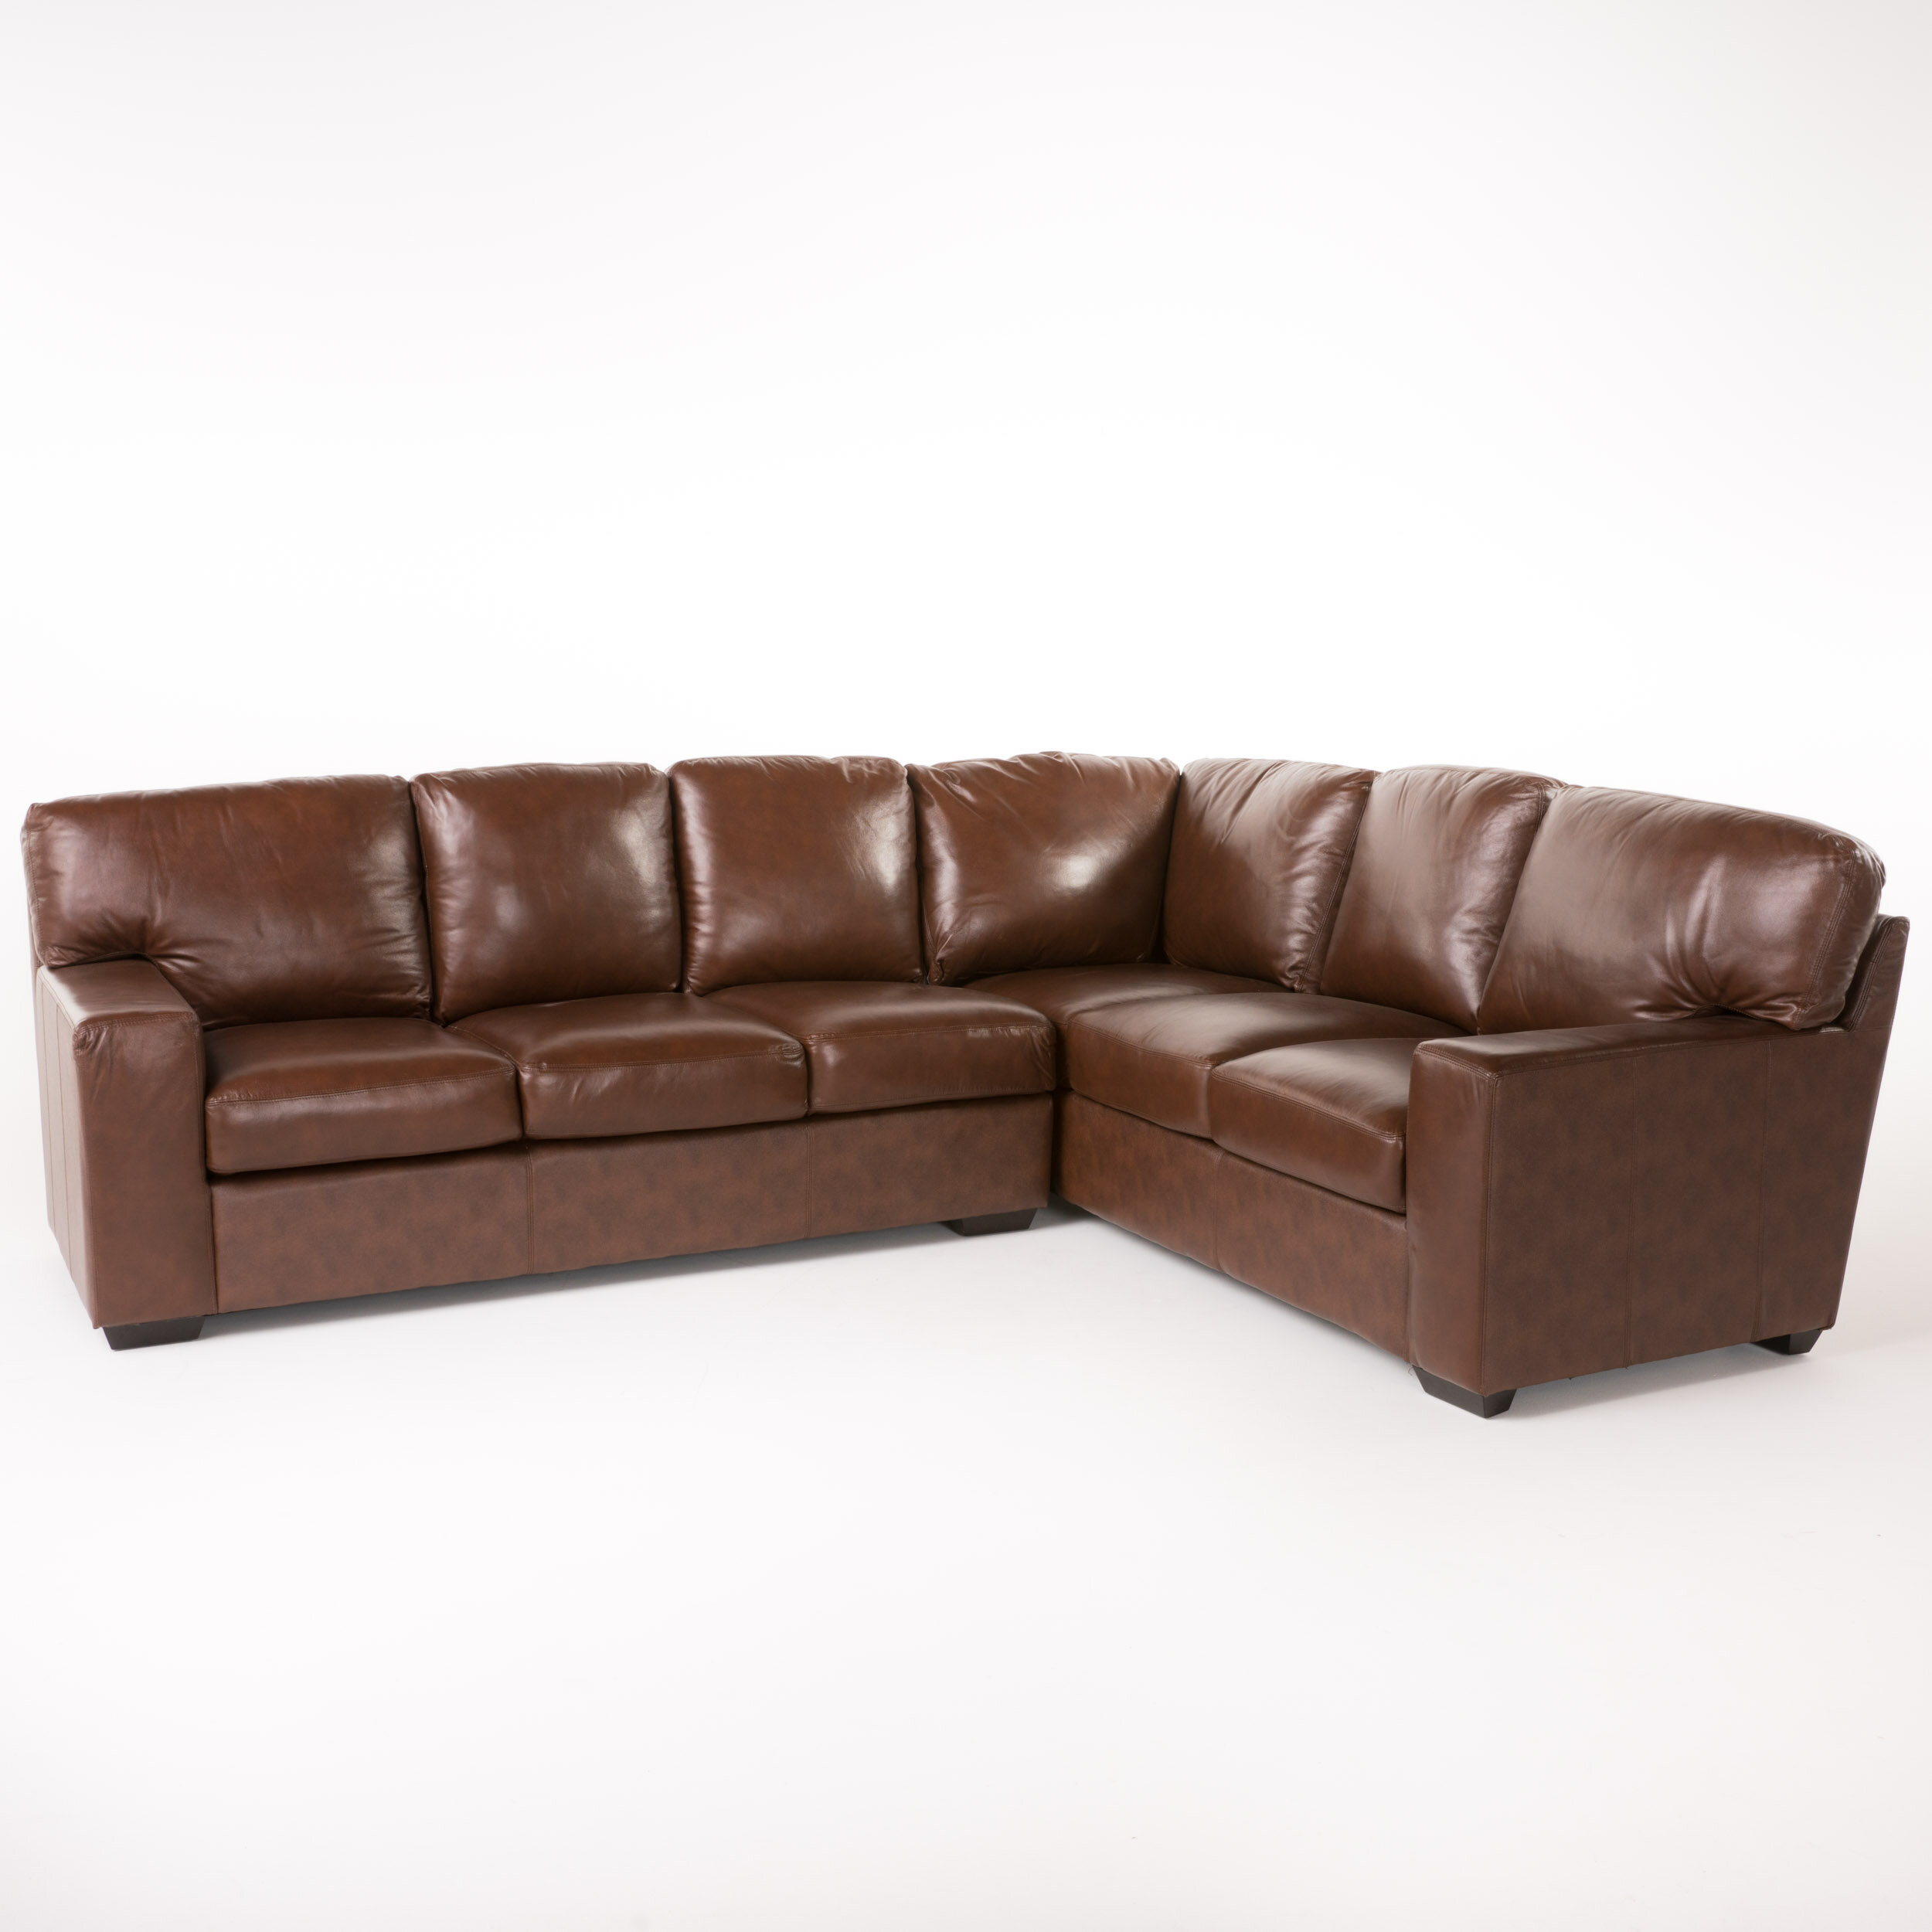 Superb Ipswich Right Hand Facing Leather Sectional Evergreenethics Interior Chair Design Evergreenethicsorg